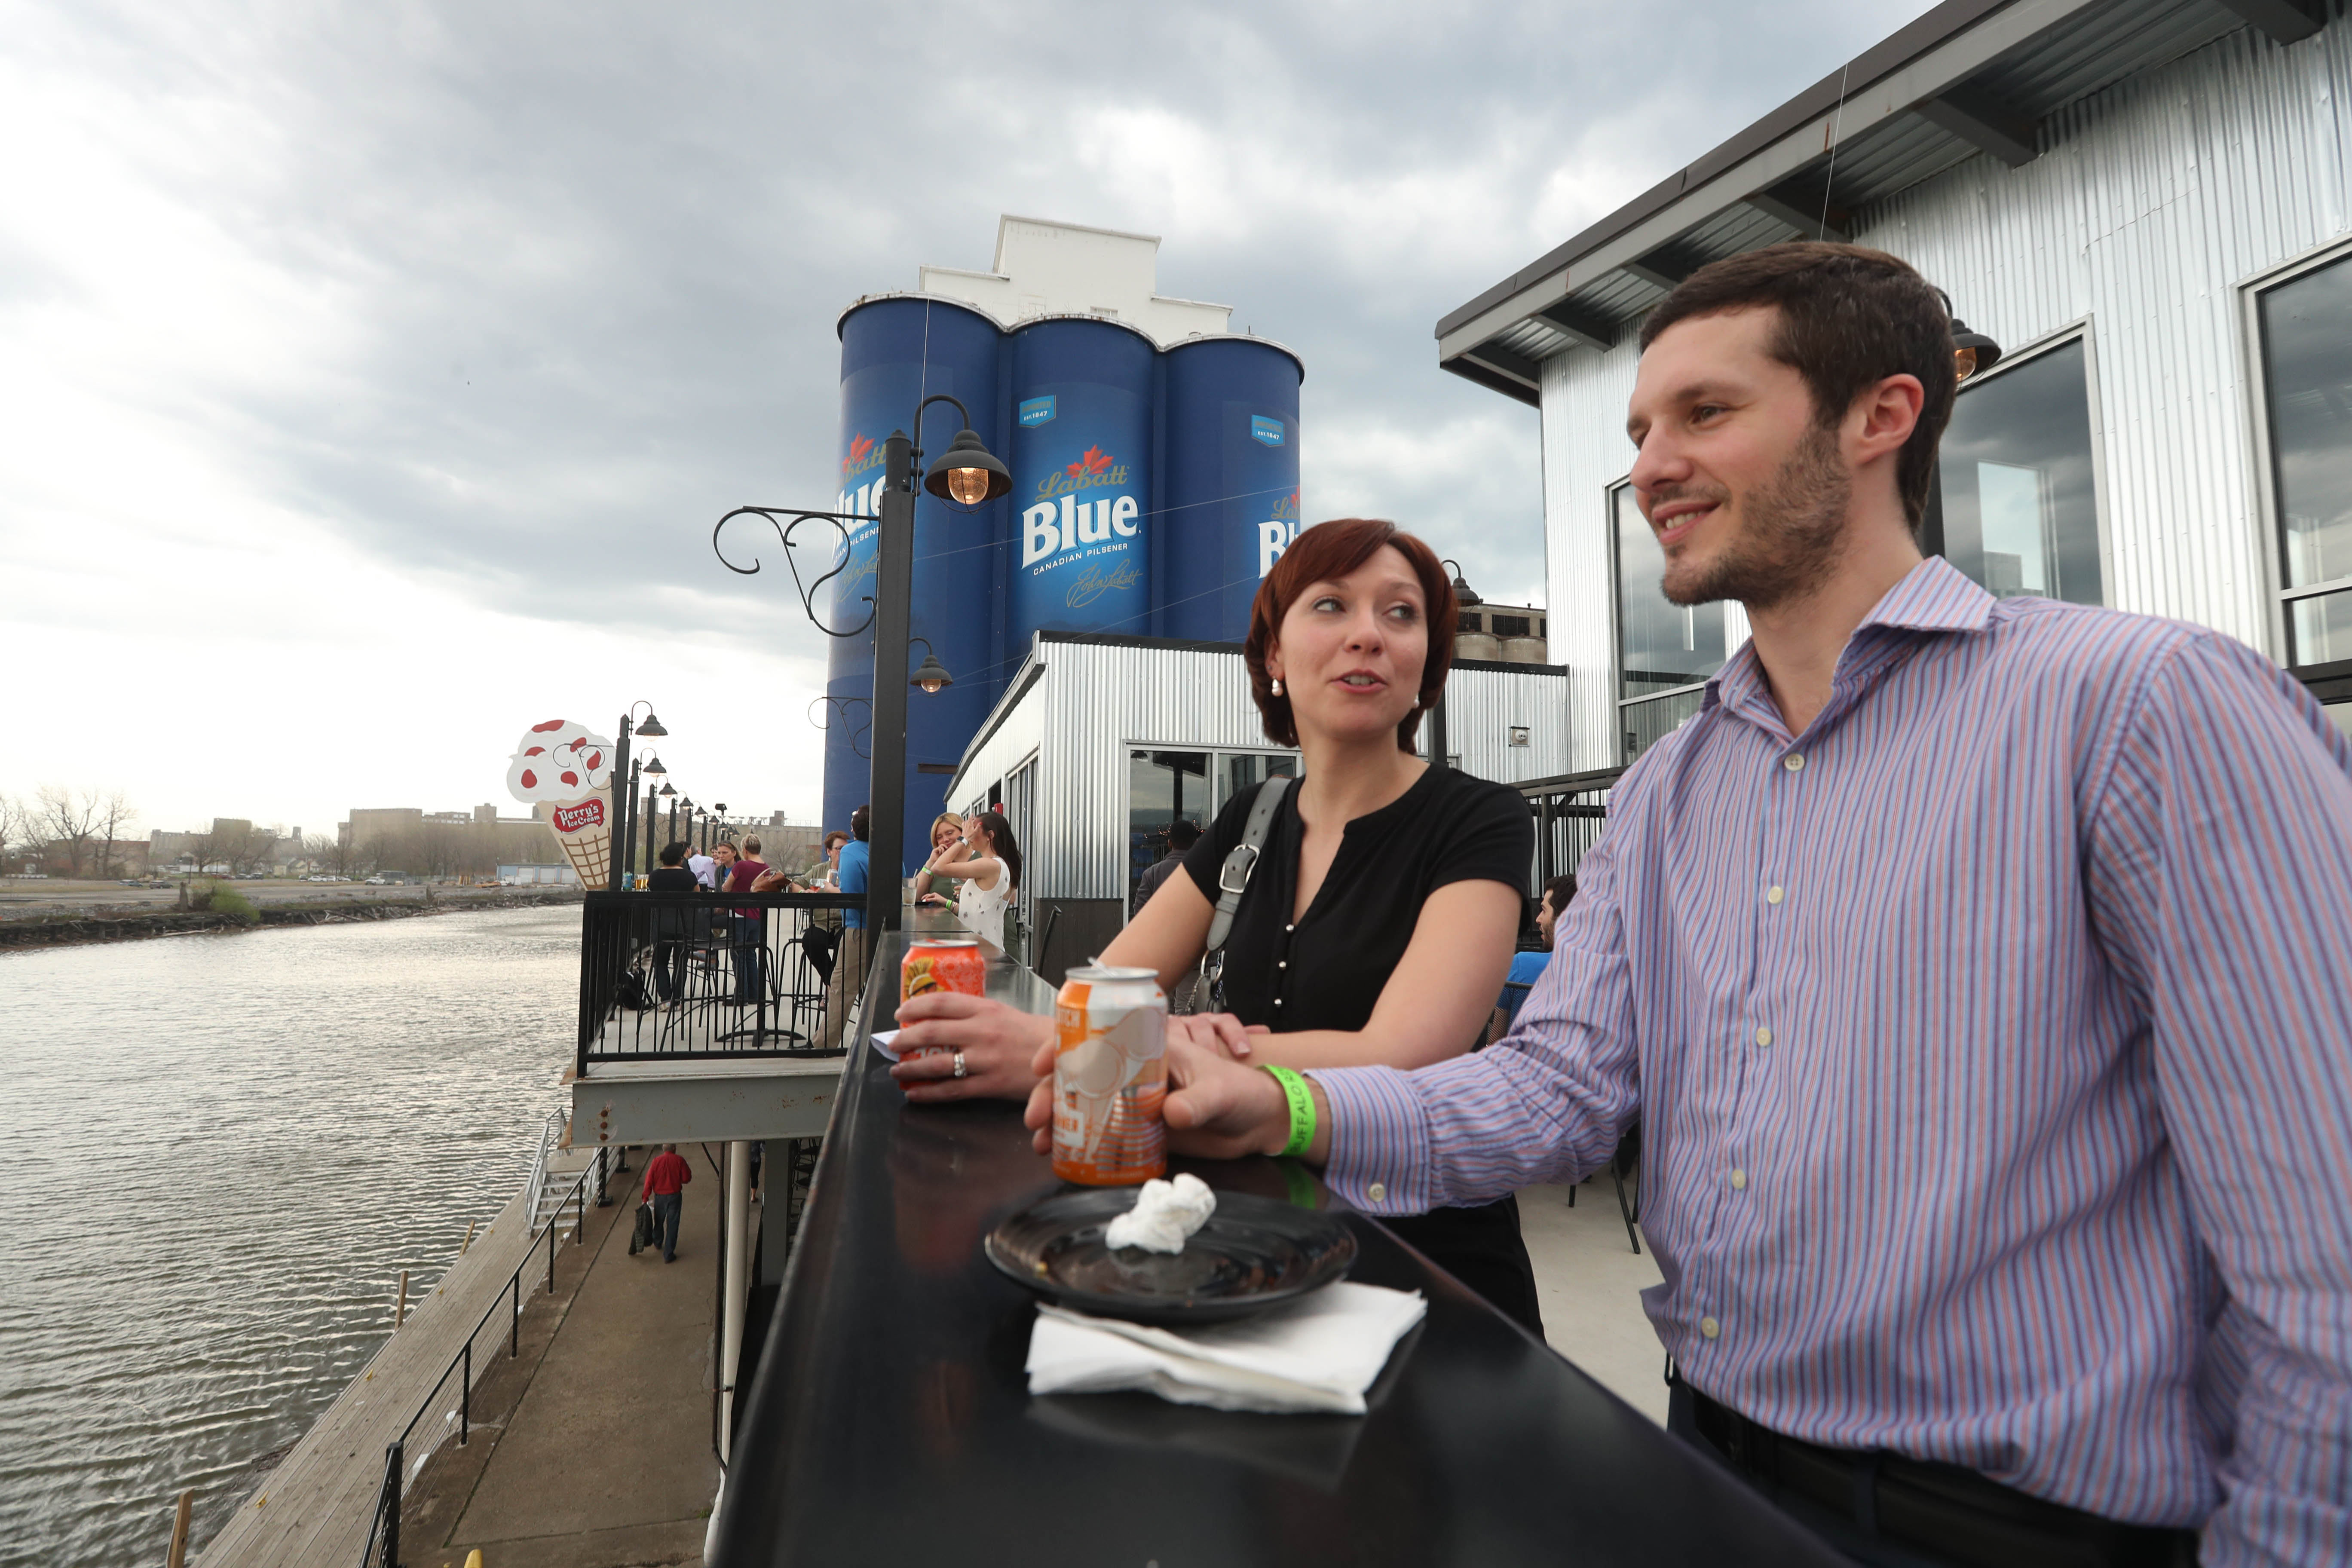 The patio at Buffalo RiverWorks has views of the waterfront and the oversized Labatt Blue cans. (Sharon Cantillon/Buffalo News file photo)